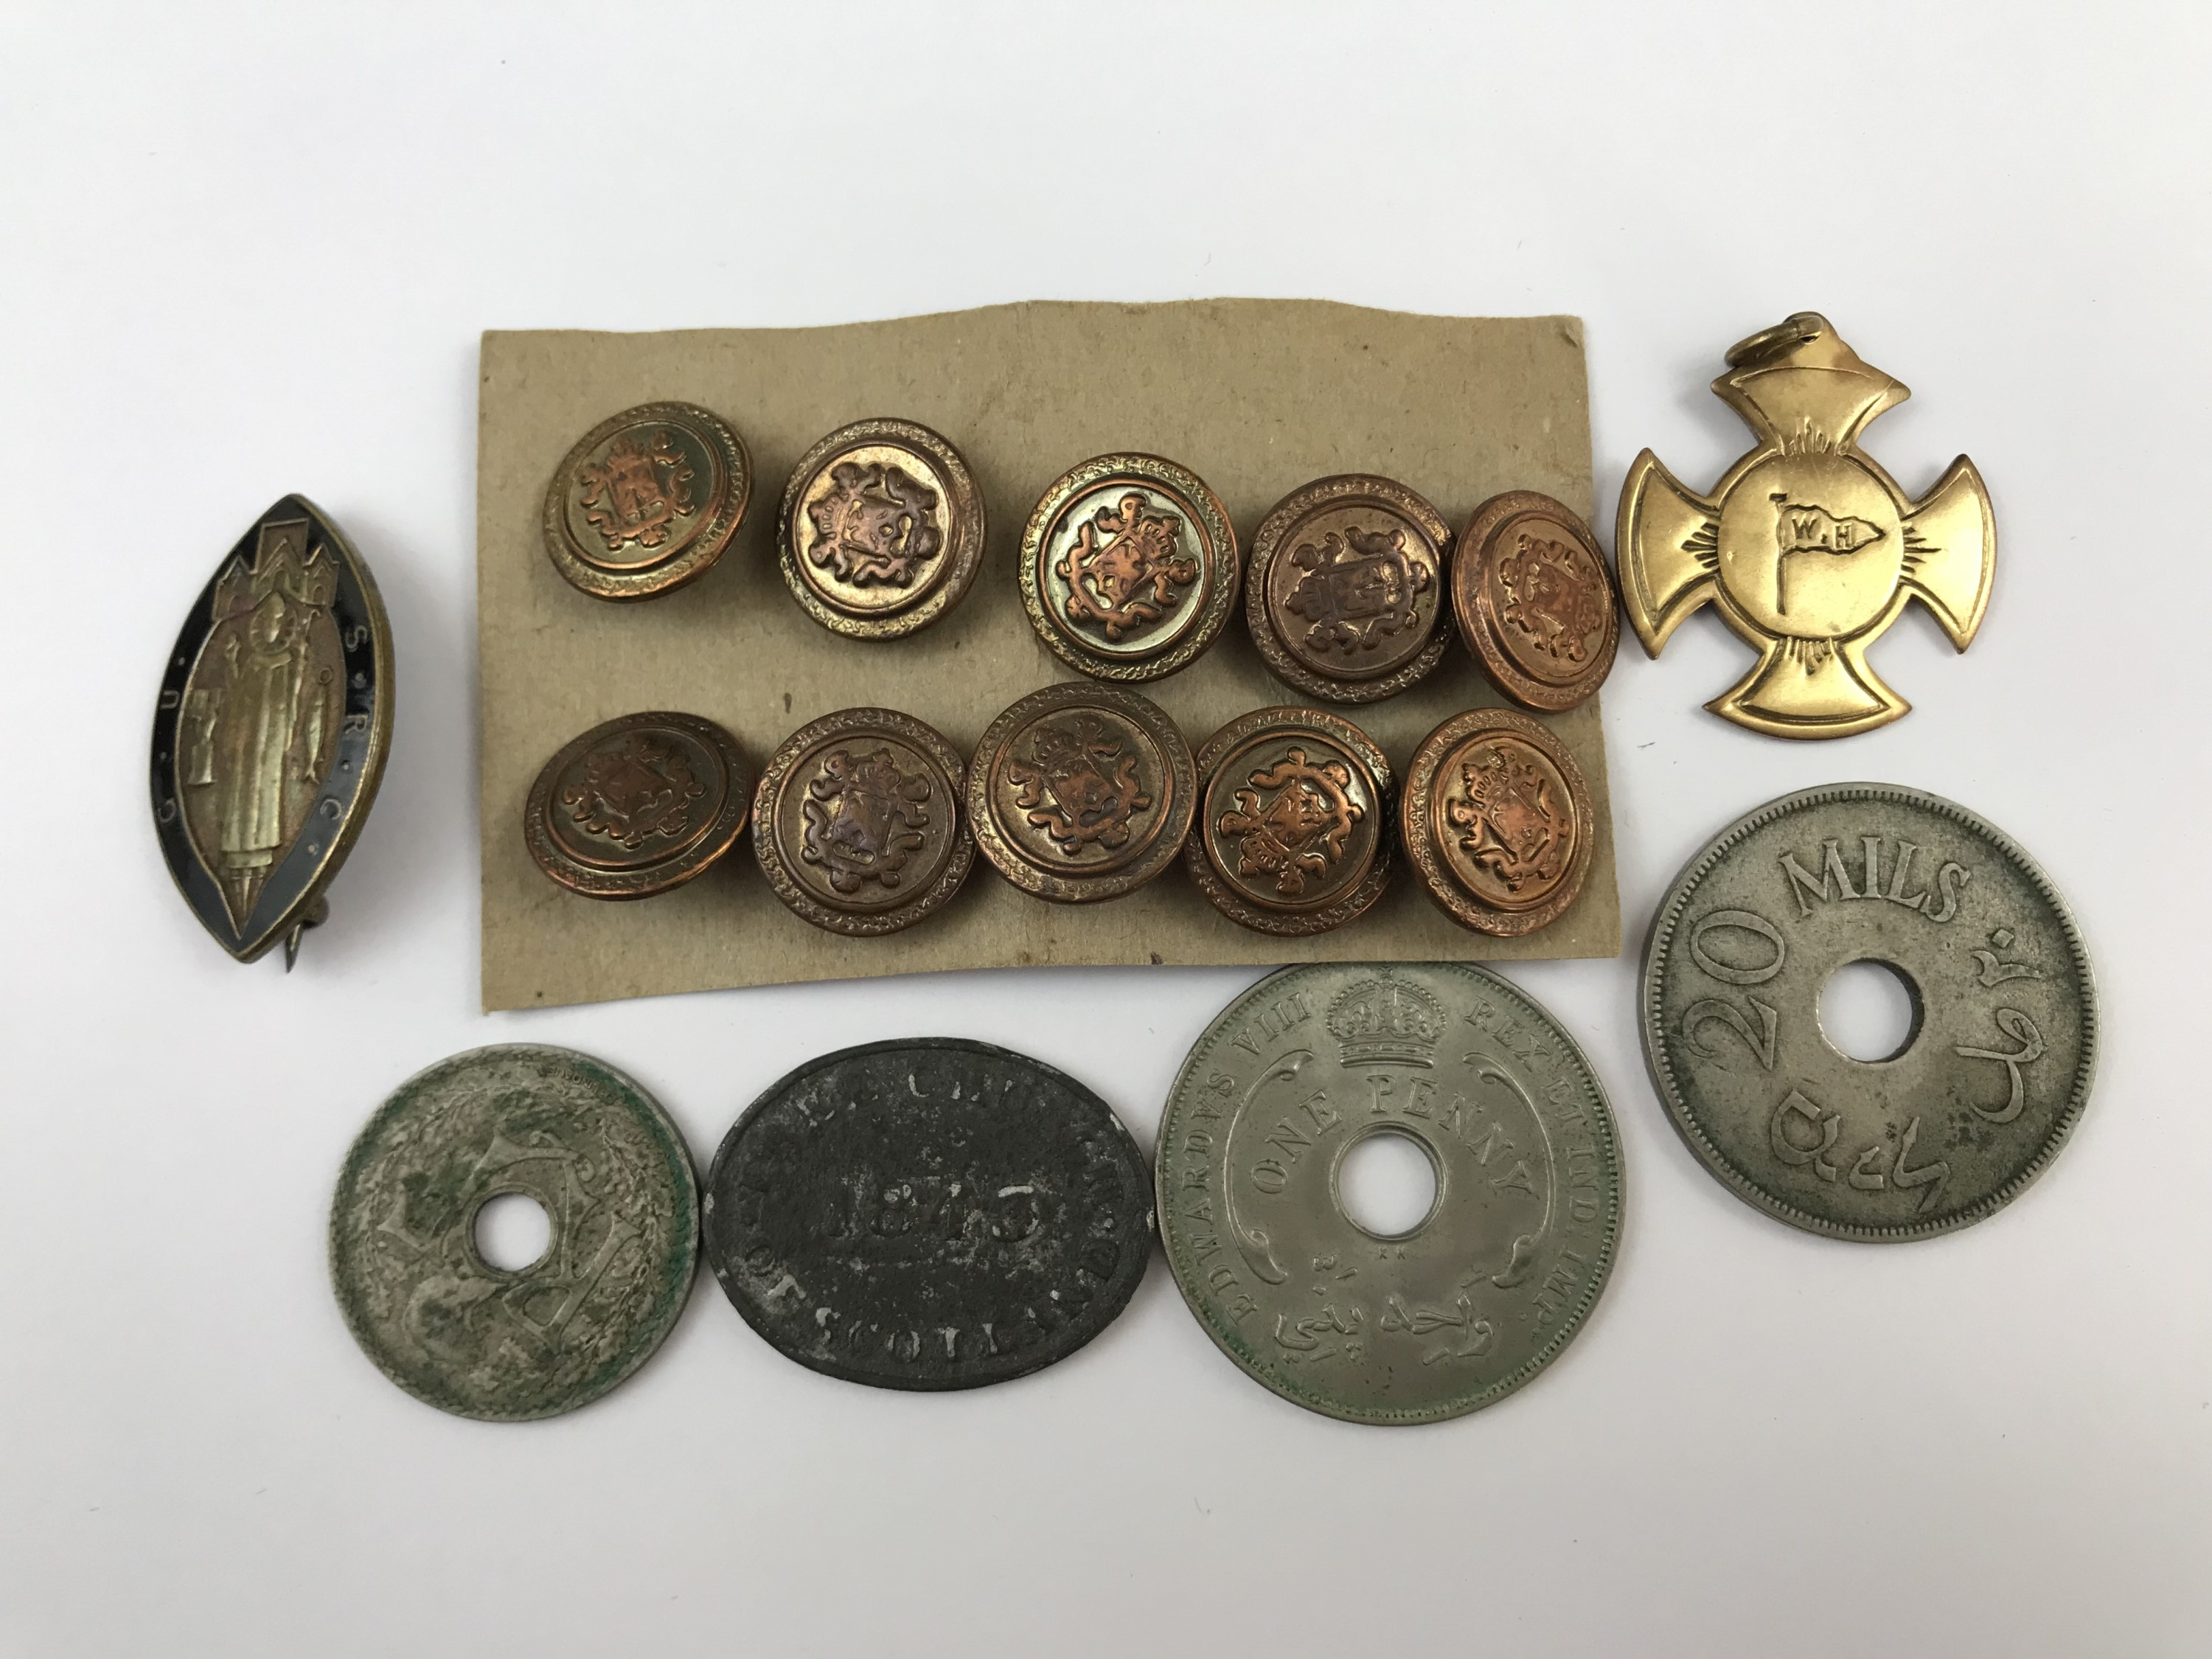 Lot 7 - Sundry collectors' items including an 1843 Free Church of Scotland communion token, a Walker and